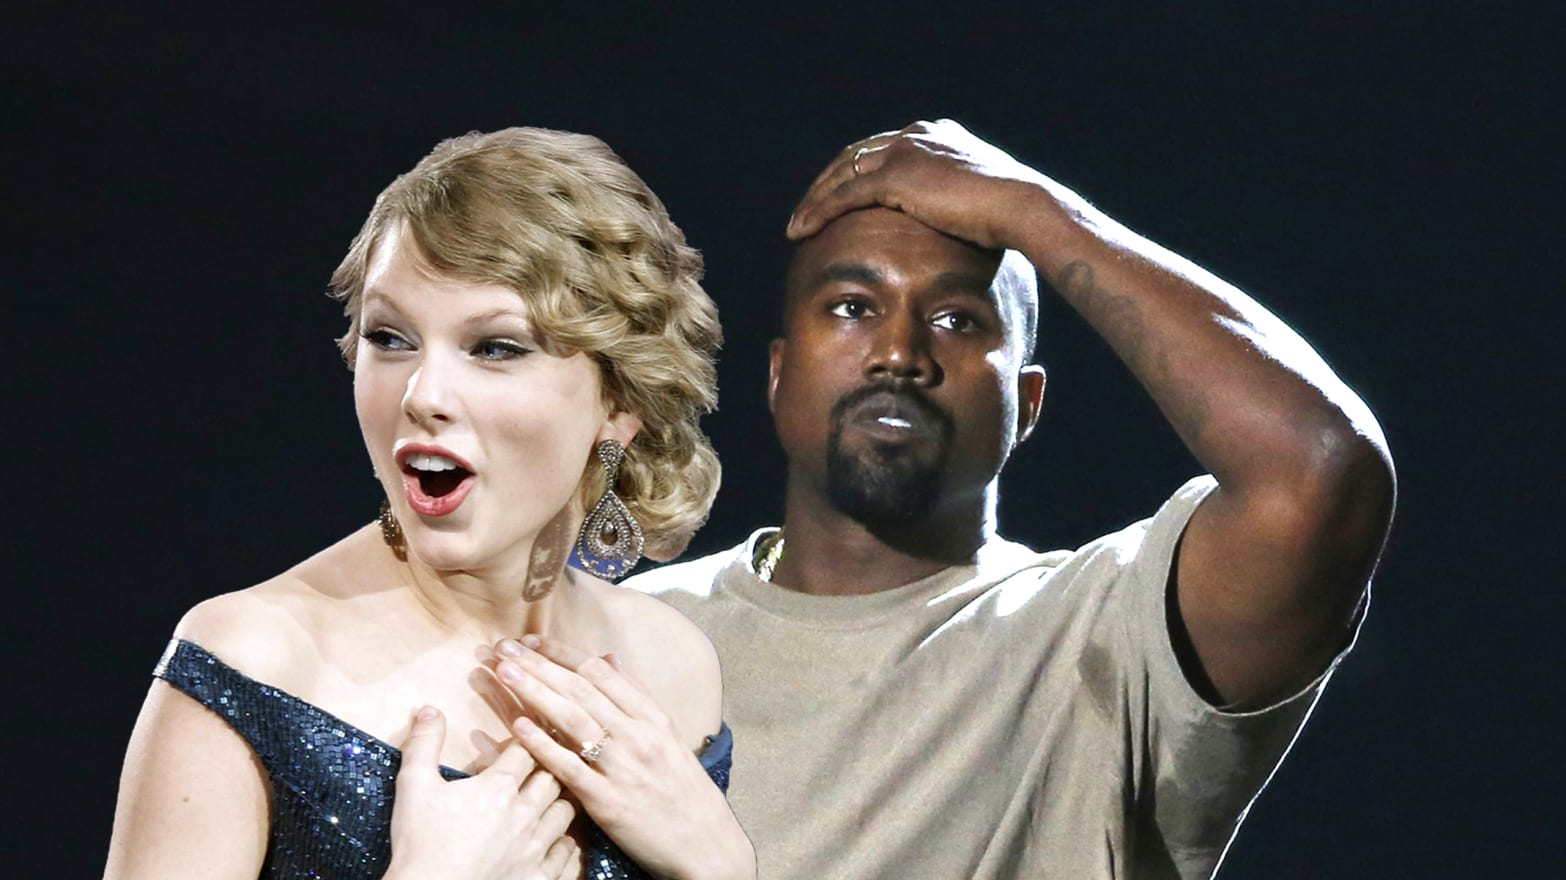 Kanye West Vs Taylor Swift The Misogynistic Feud That Will Never End